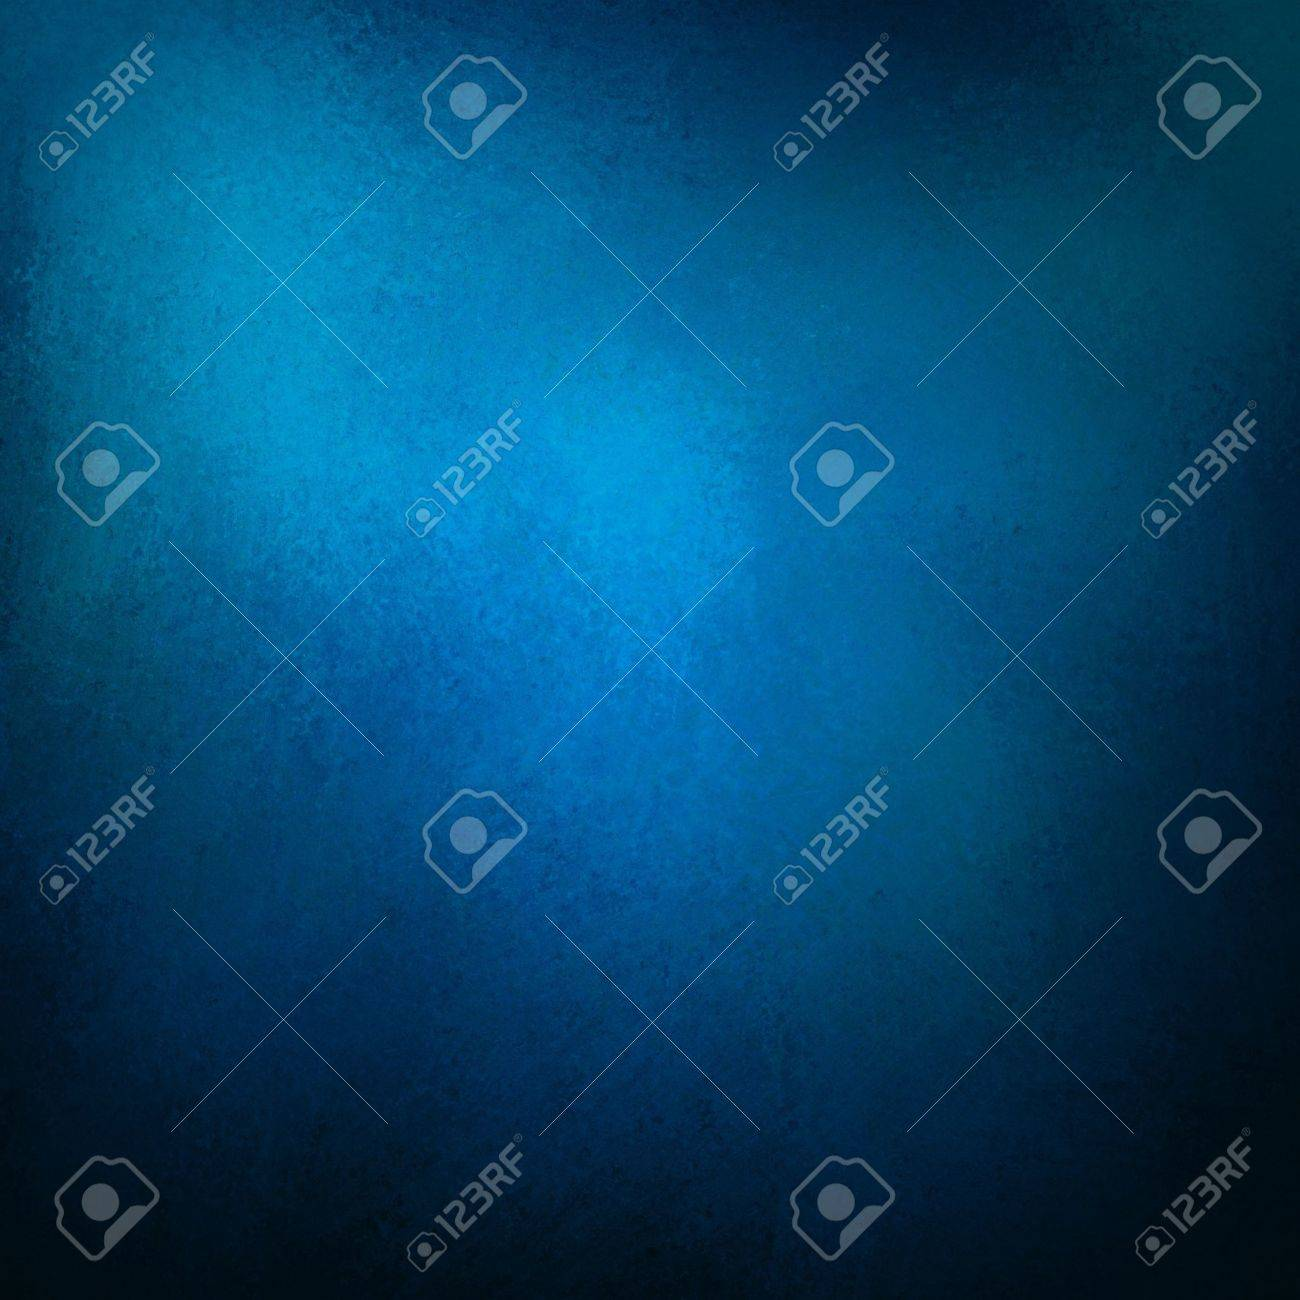 solid blue background abstract distressed antique dark background